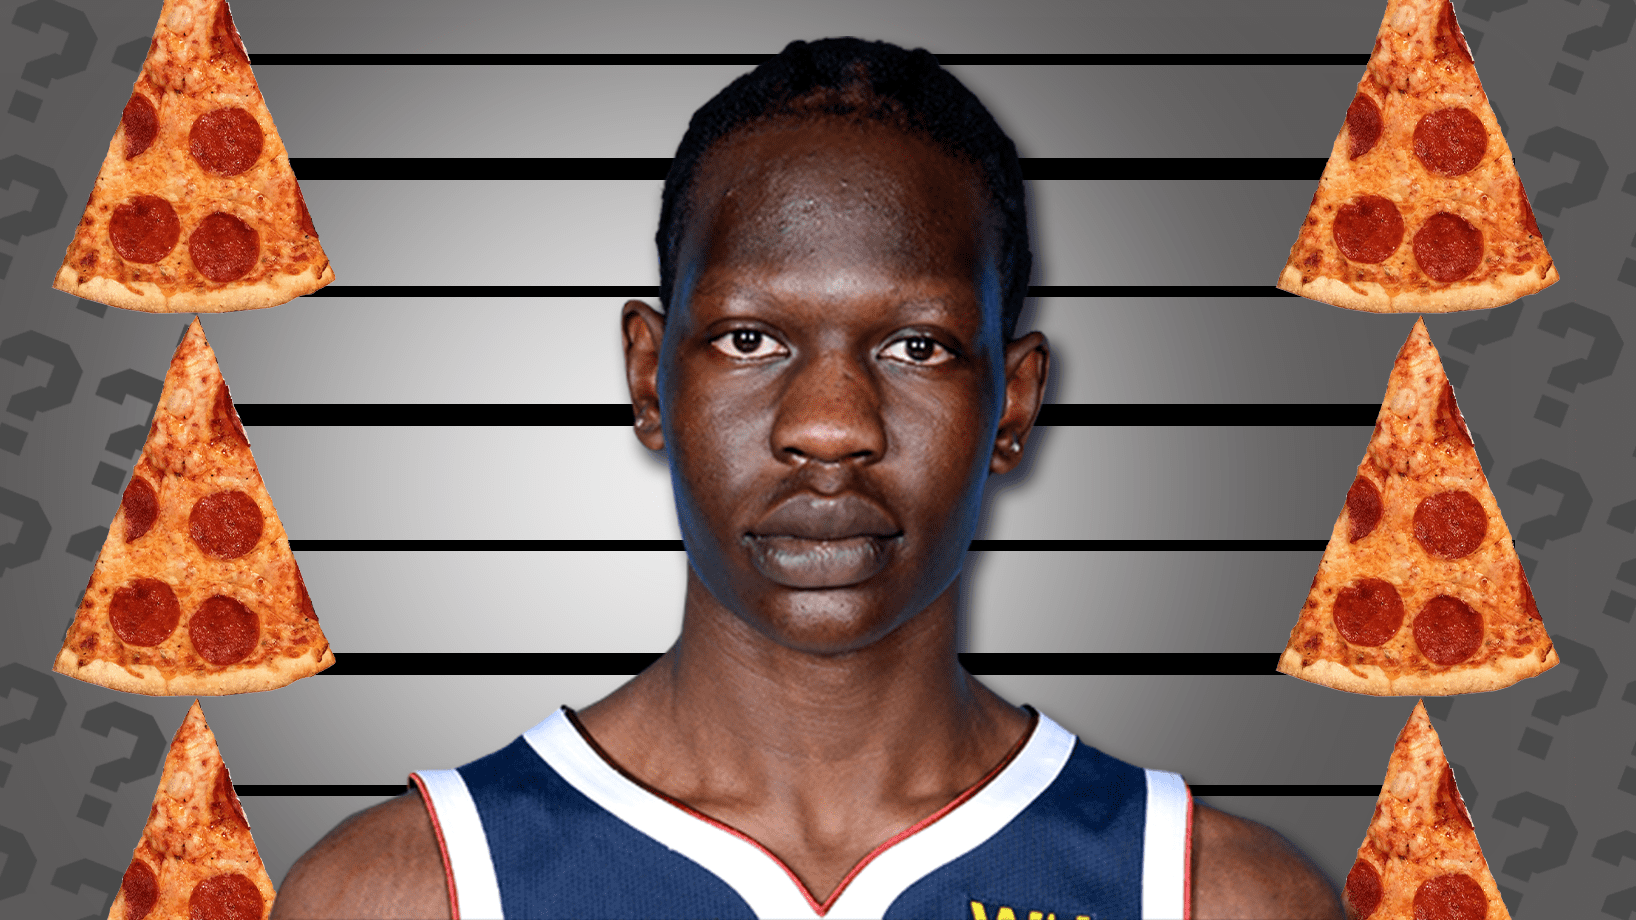 Bol Bol: How Many Pizza Slices Tall is He?